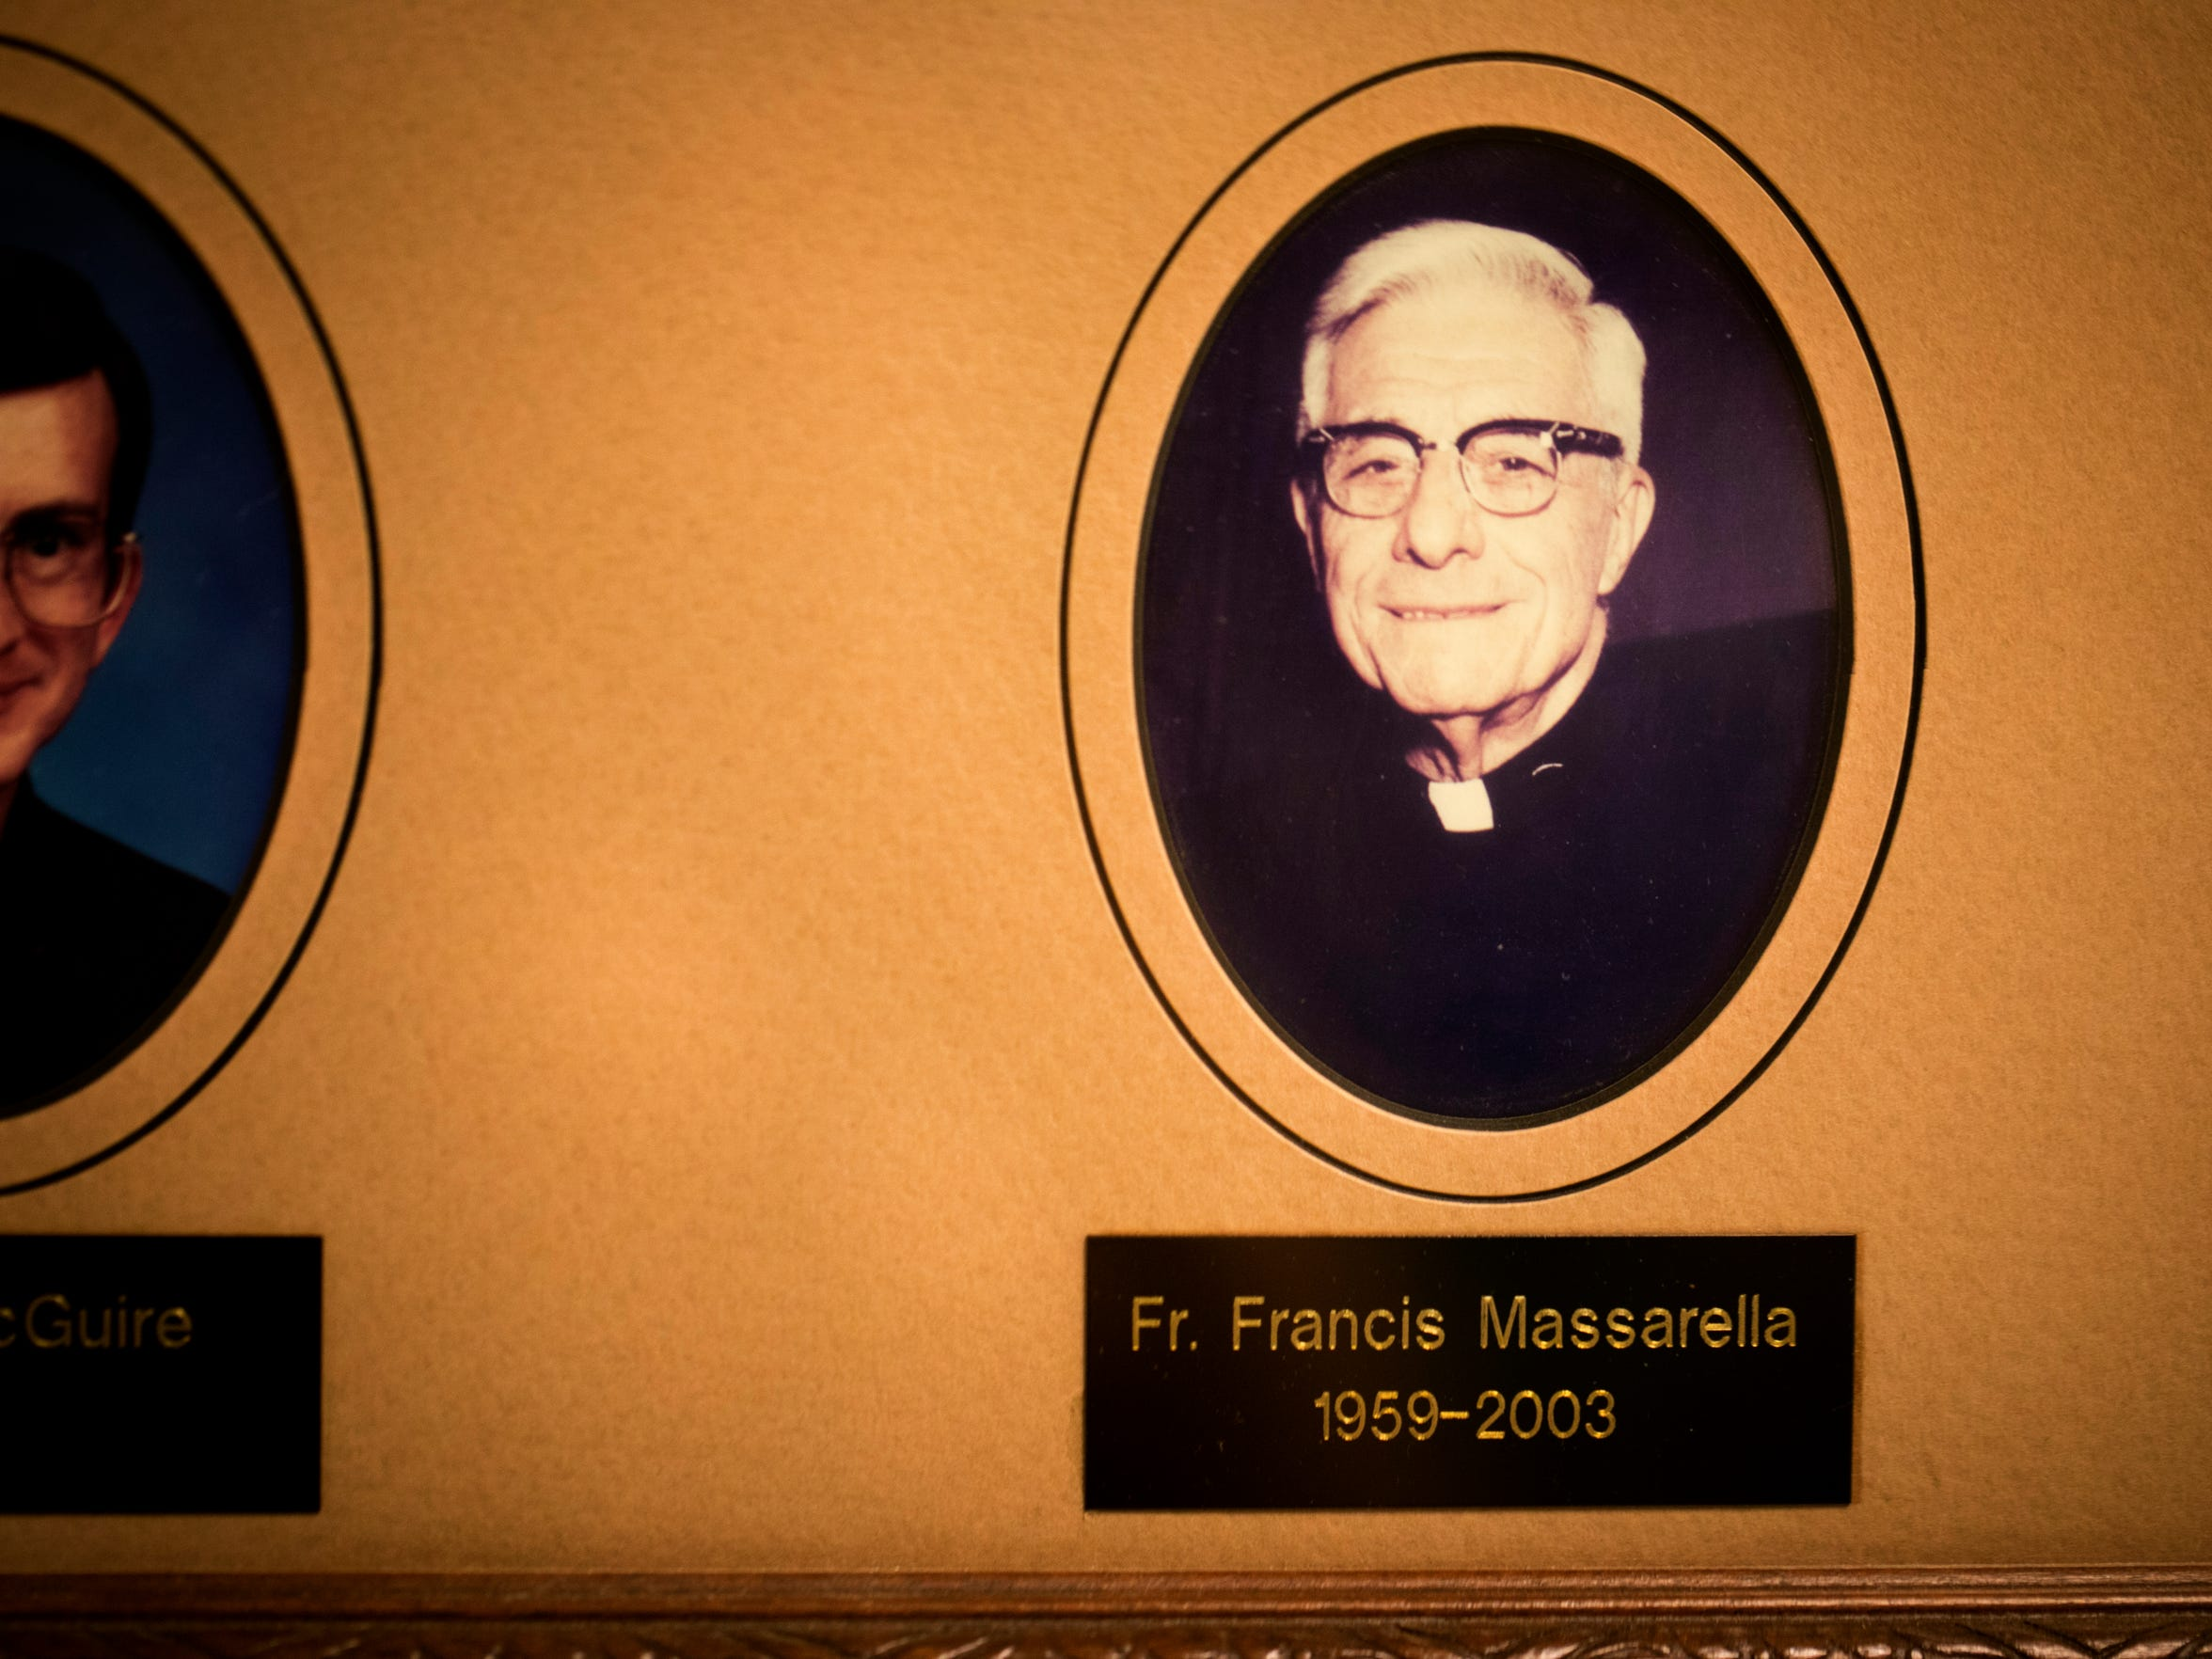 A photo of the Rev. Frank Massarella still hangs in